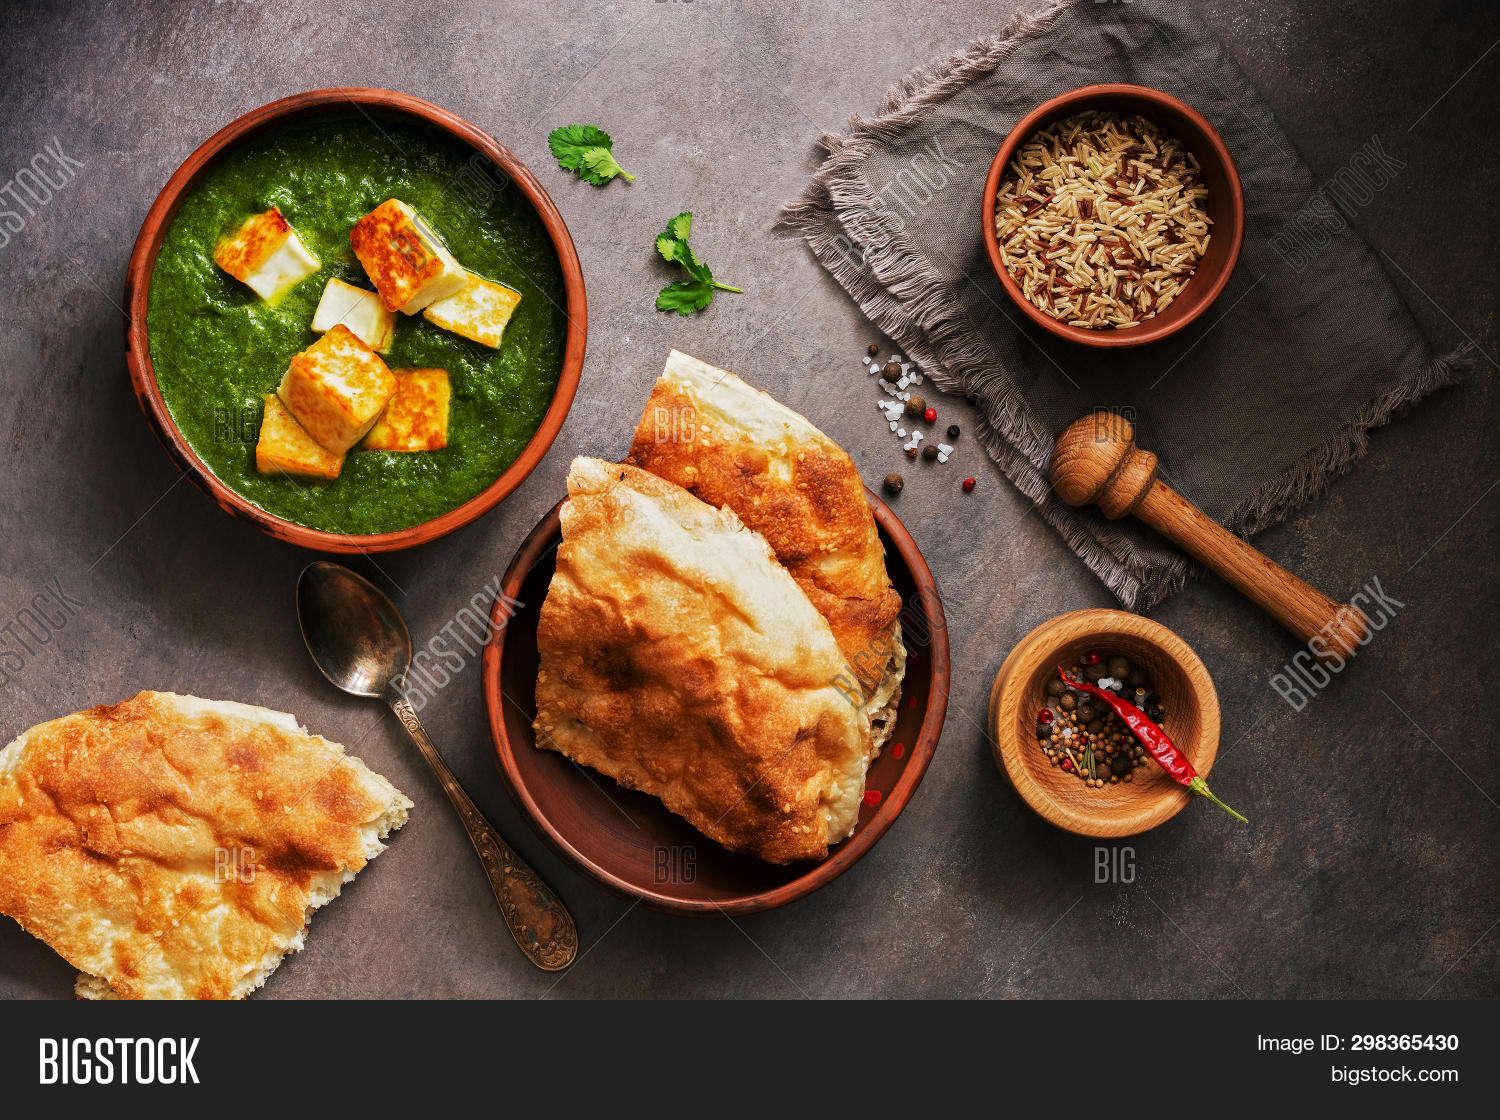 Incredible Palak Paneer Spinach Image Photo Free Trial Bigstock Home Interior And Landscaping Analalmasignezvosmurscom